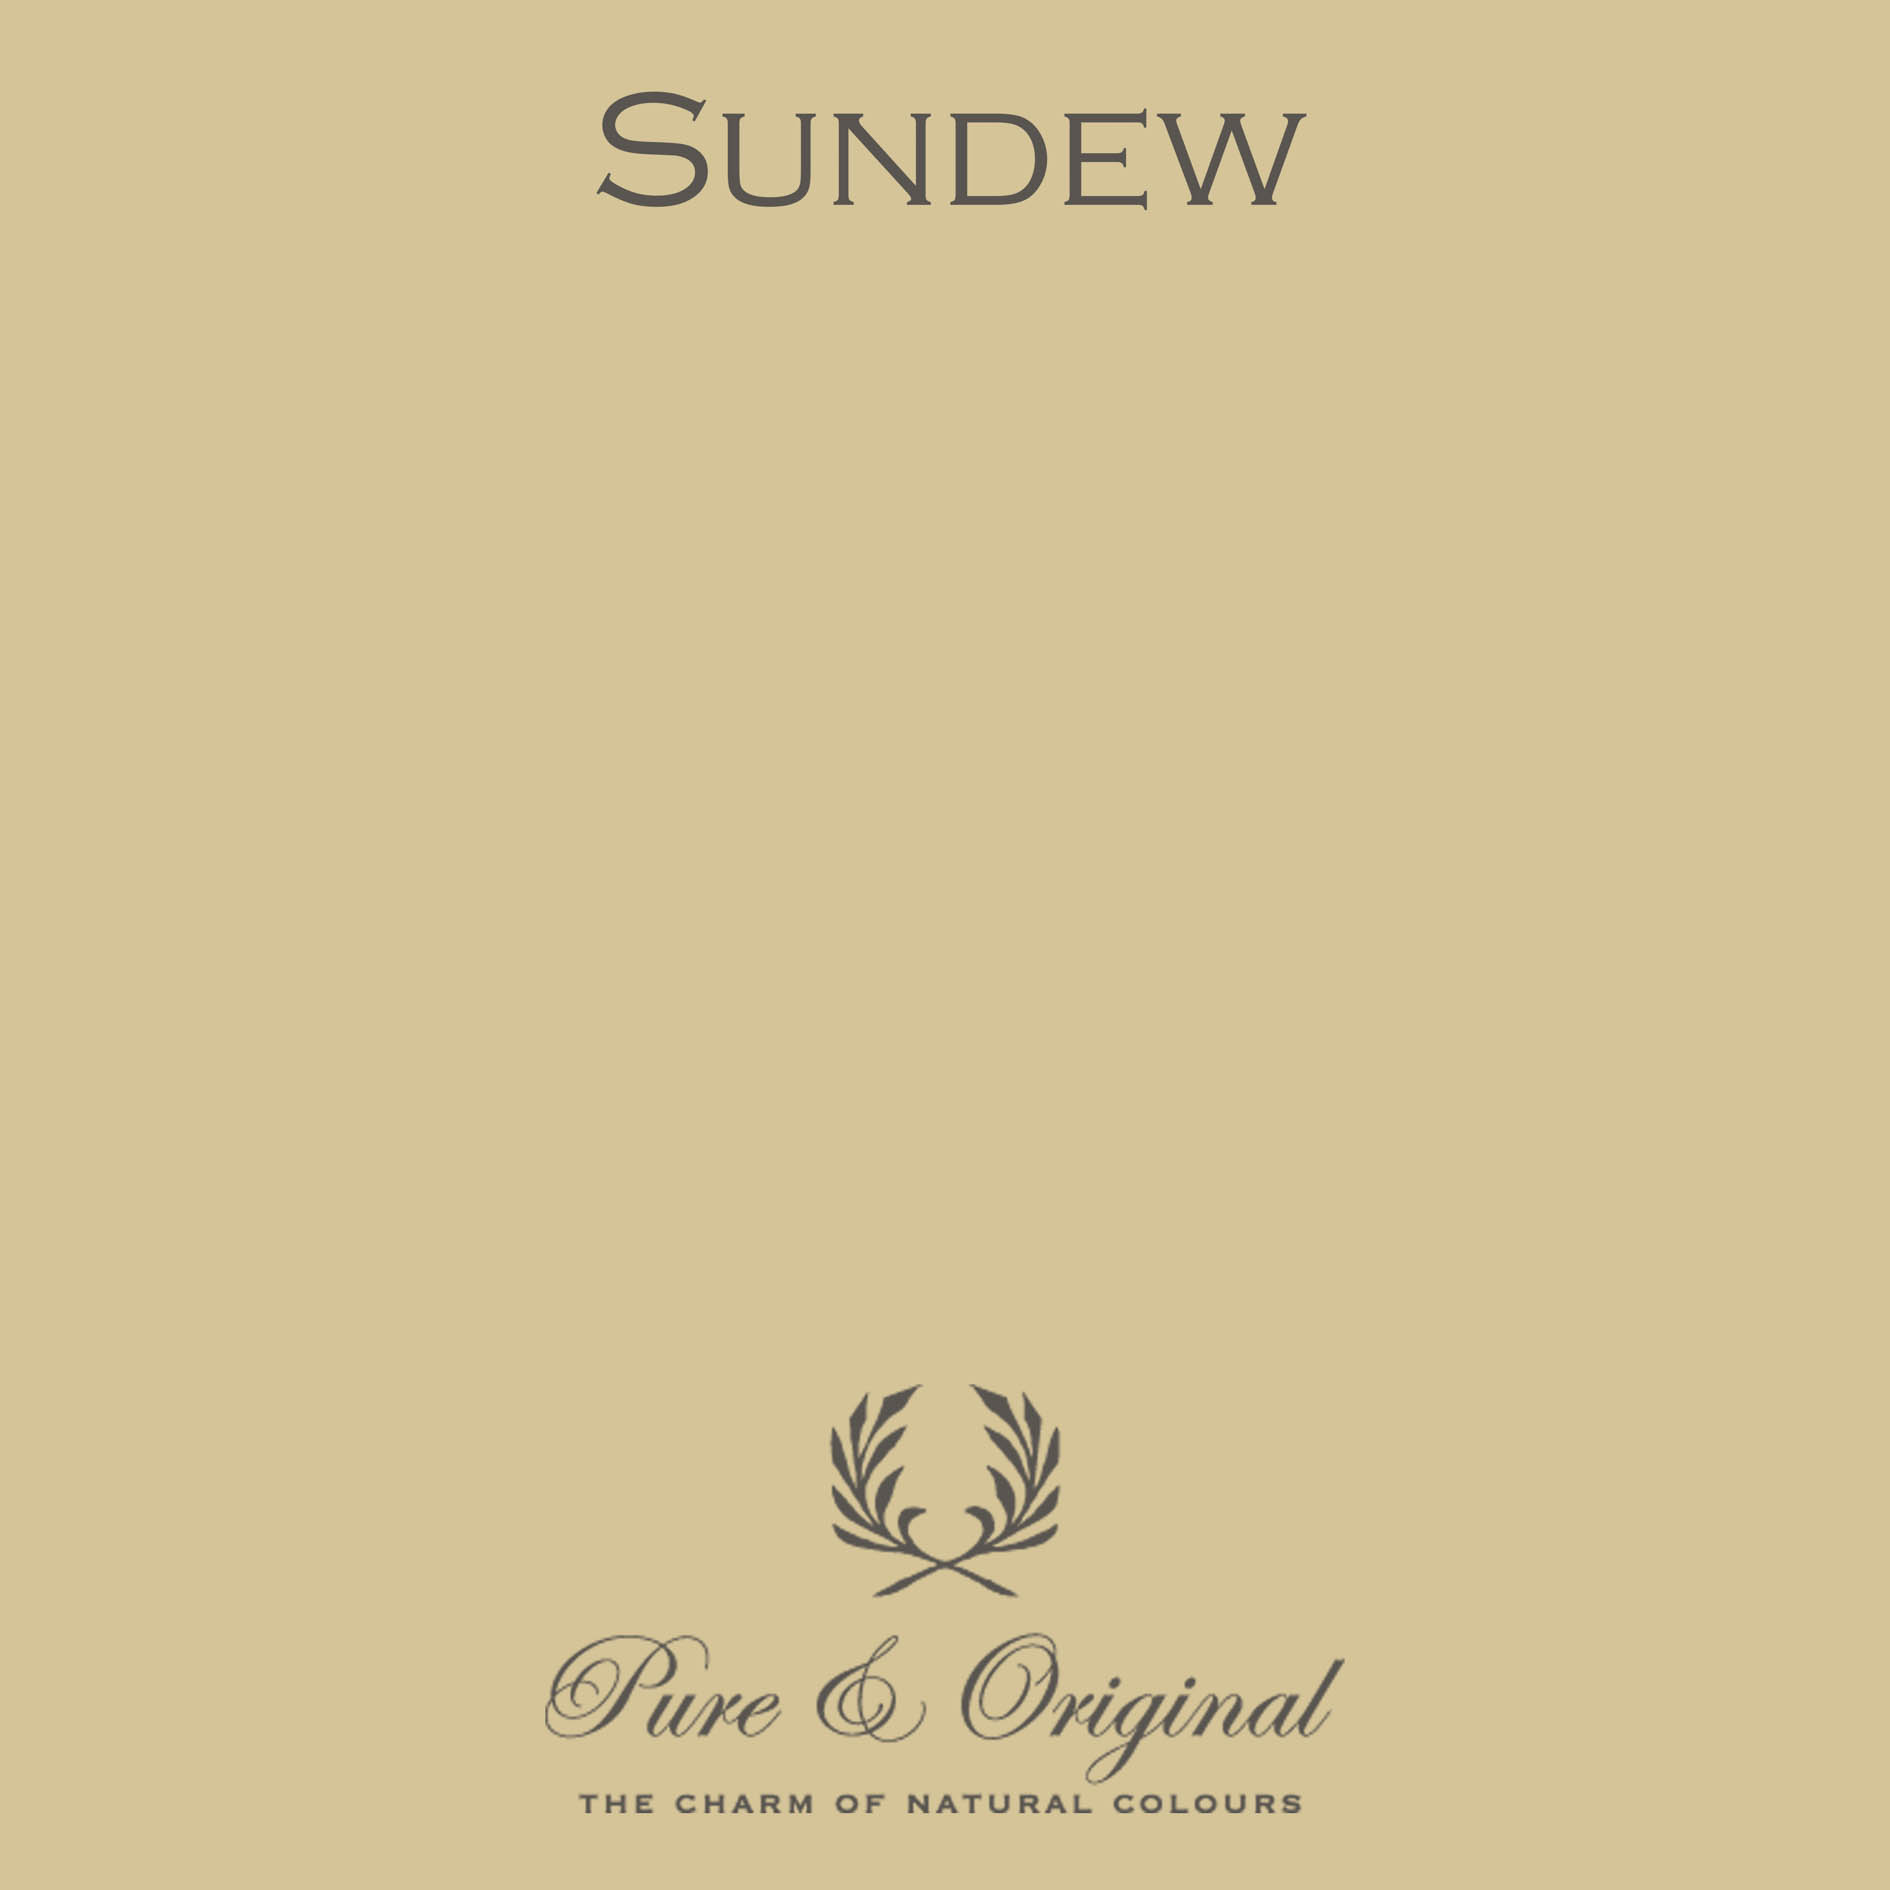 Pure & Original Sundew